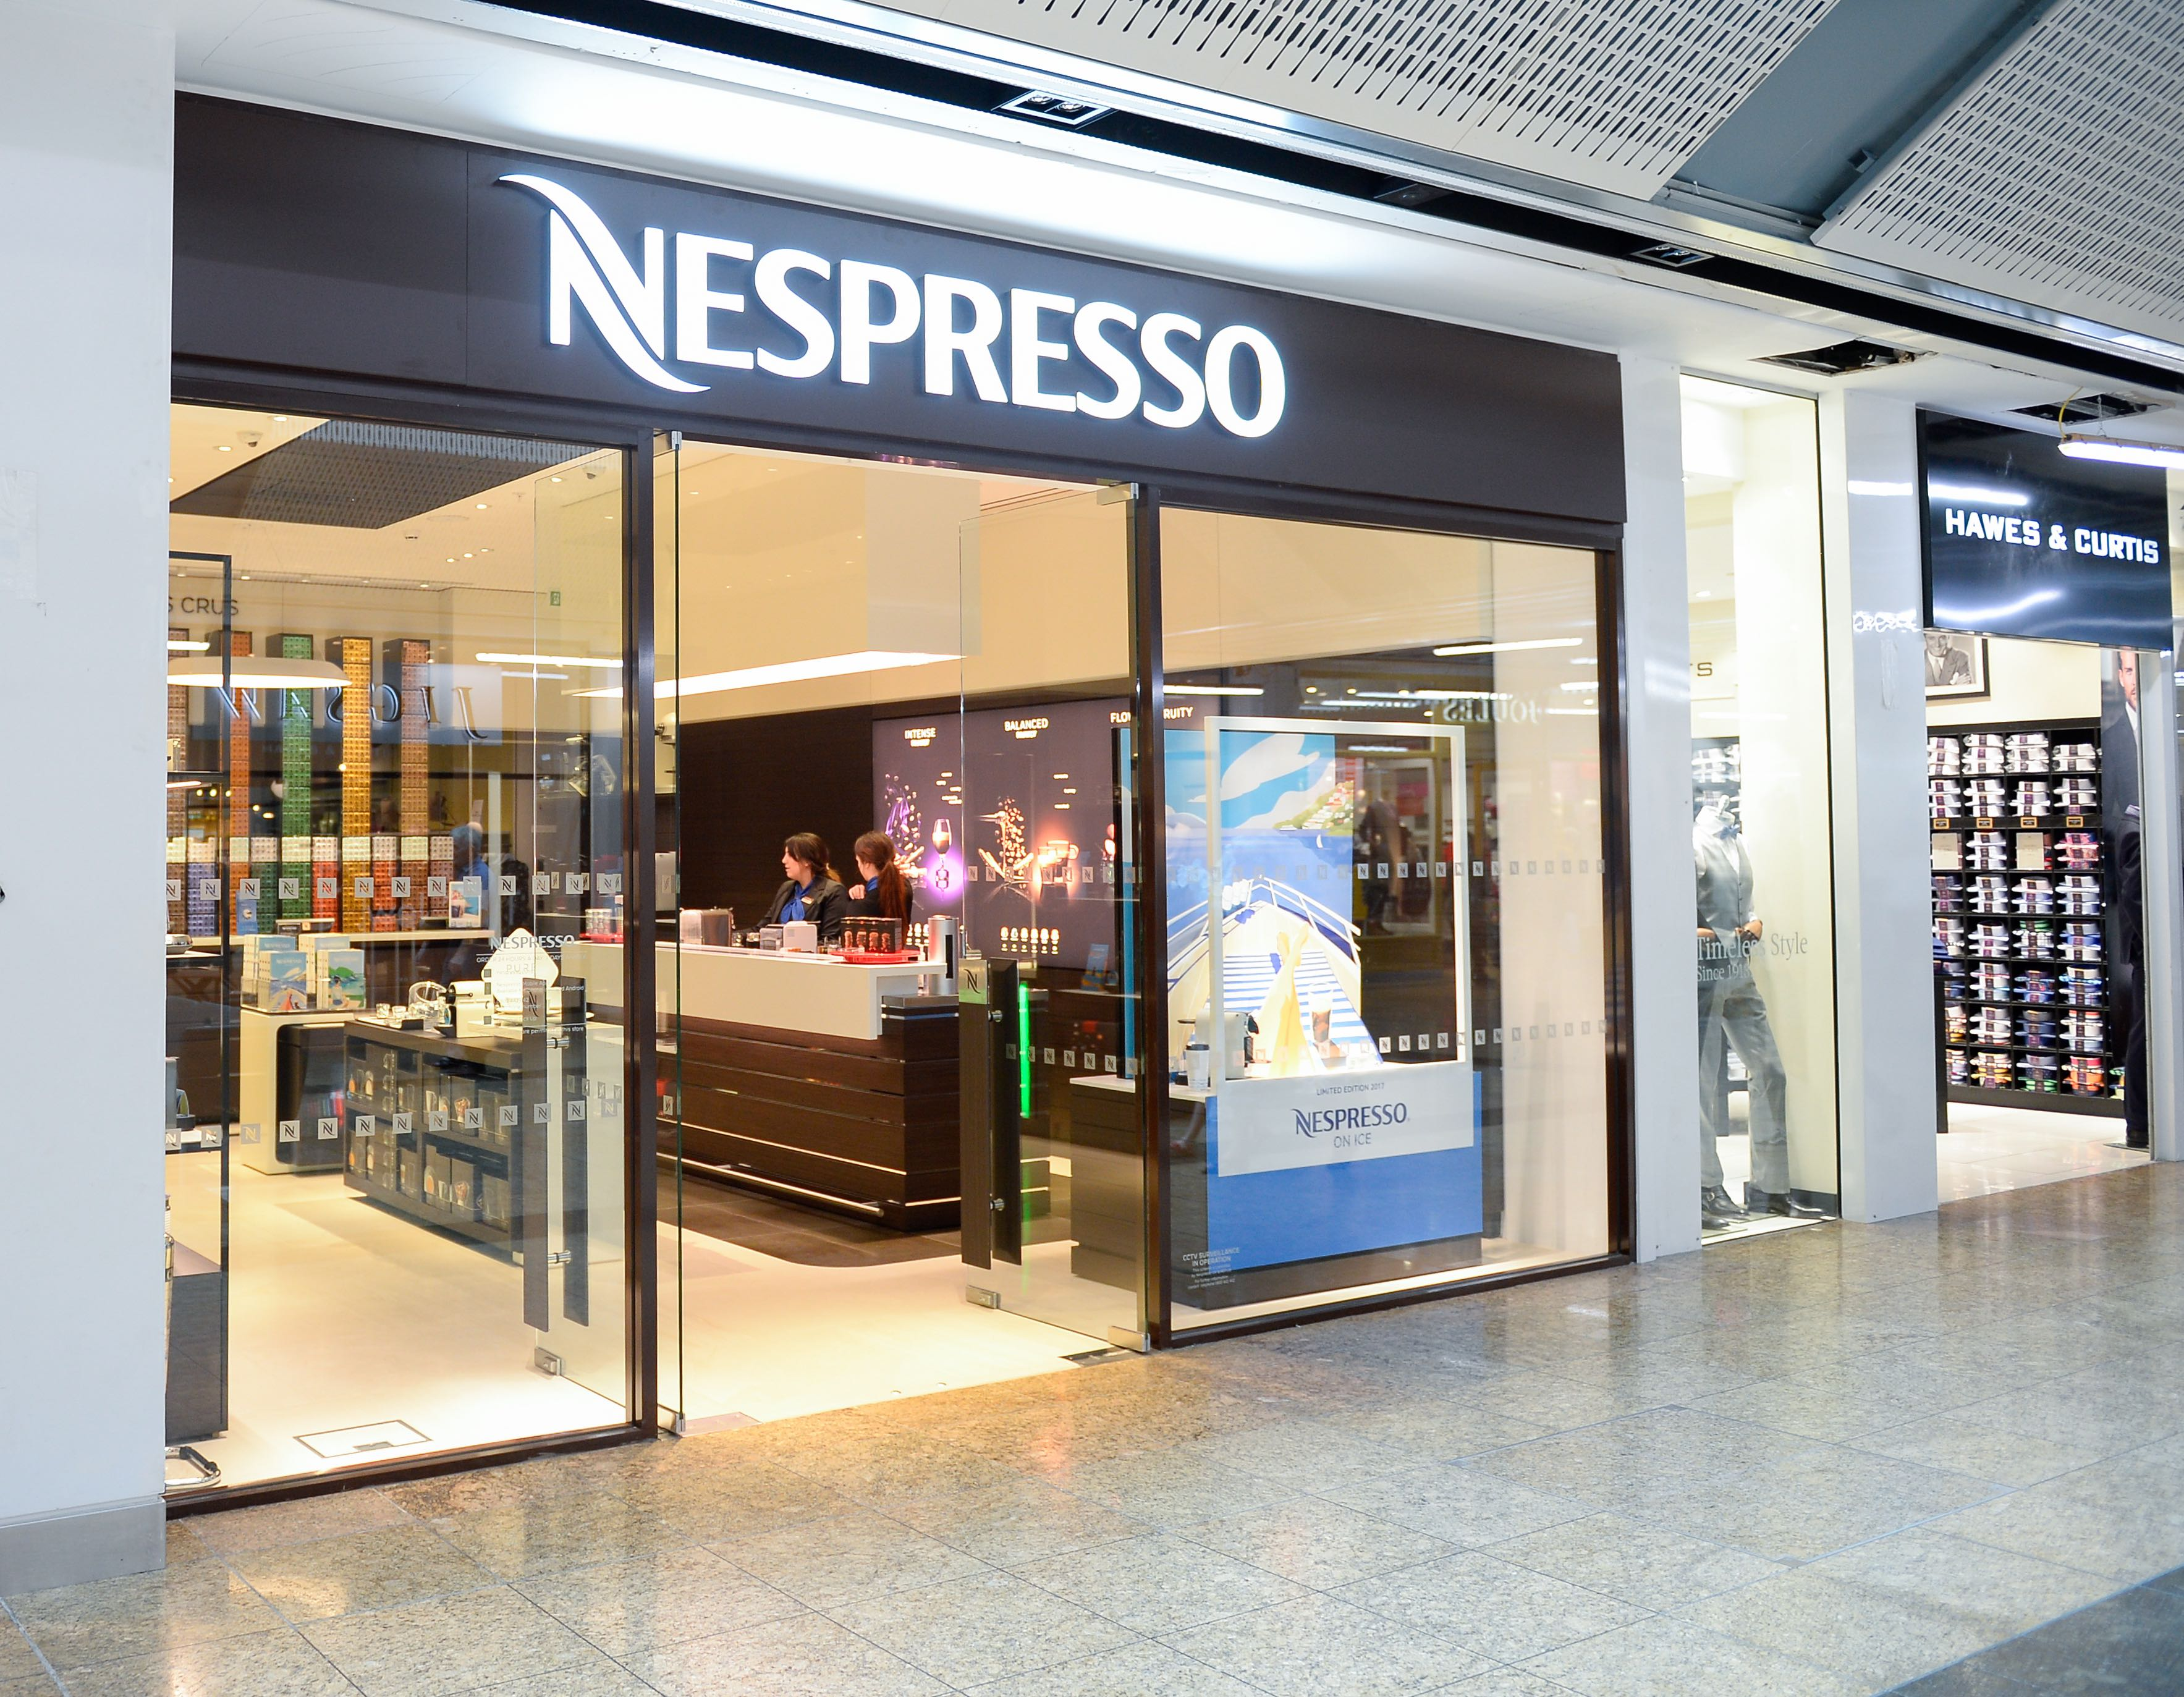 PRESS - Meadowhall - Nespresso front 1